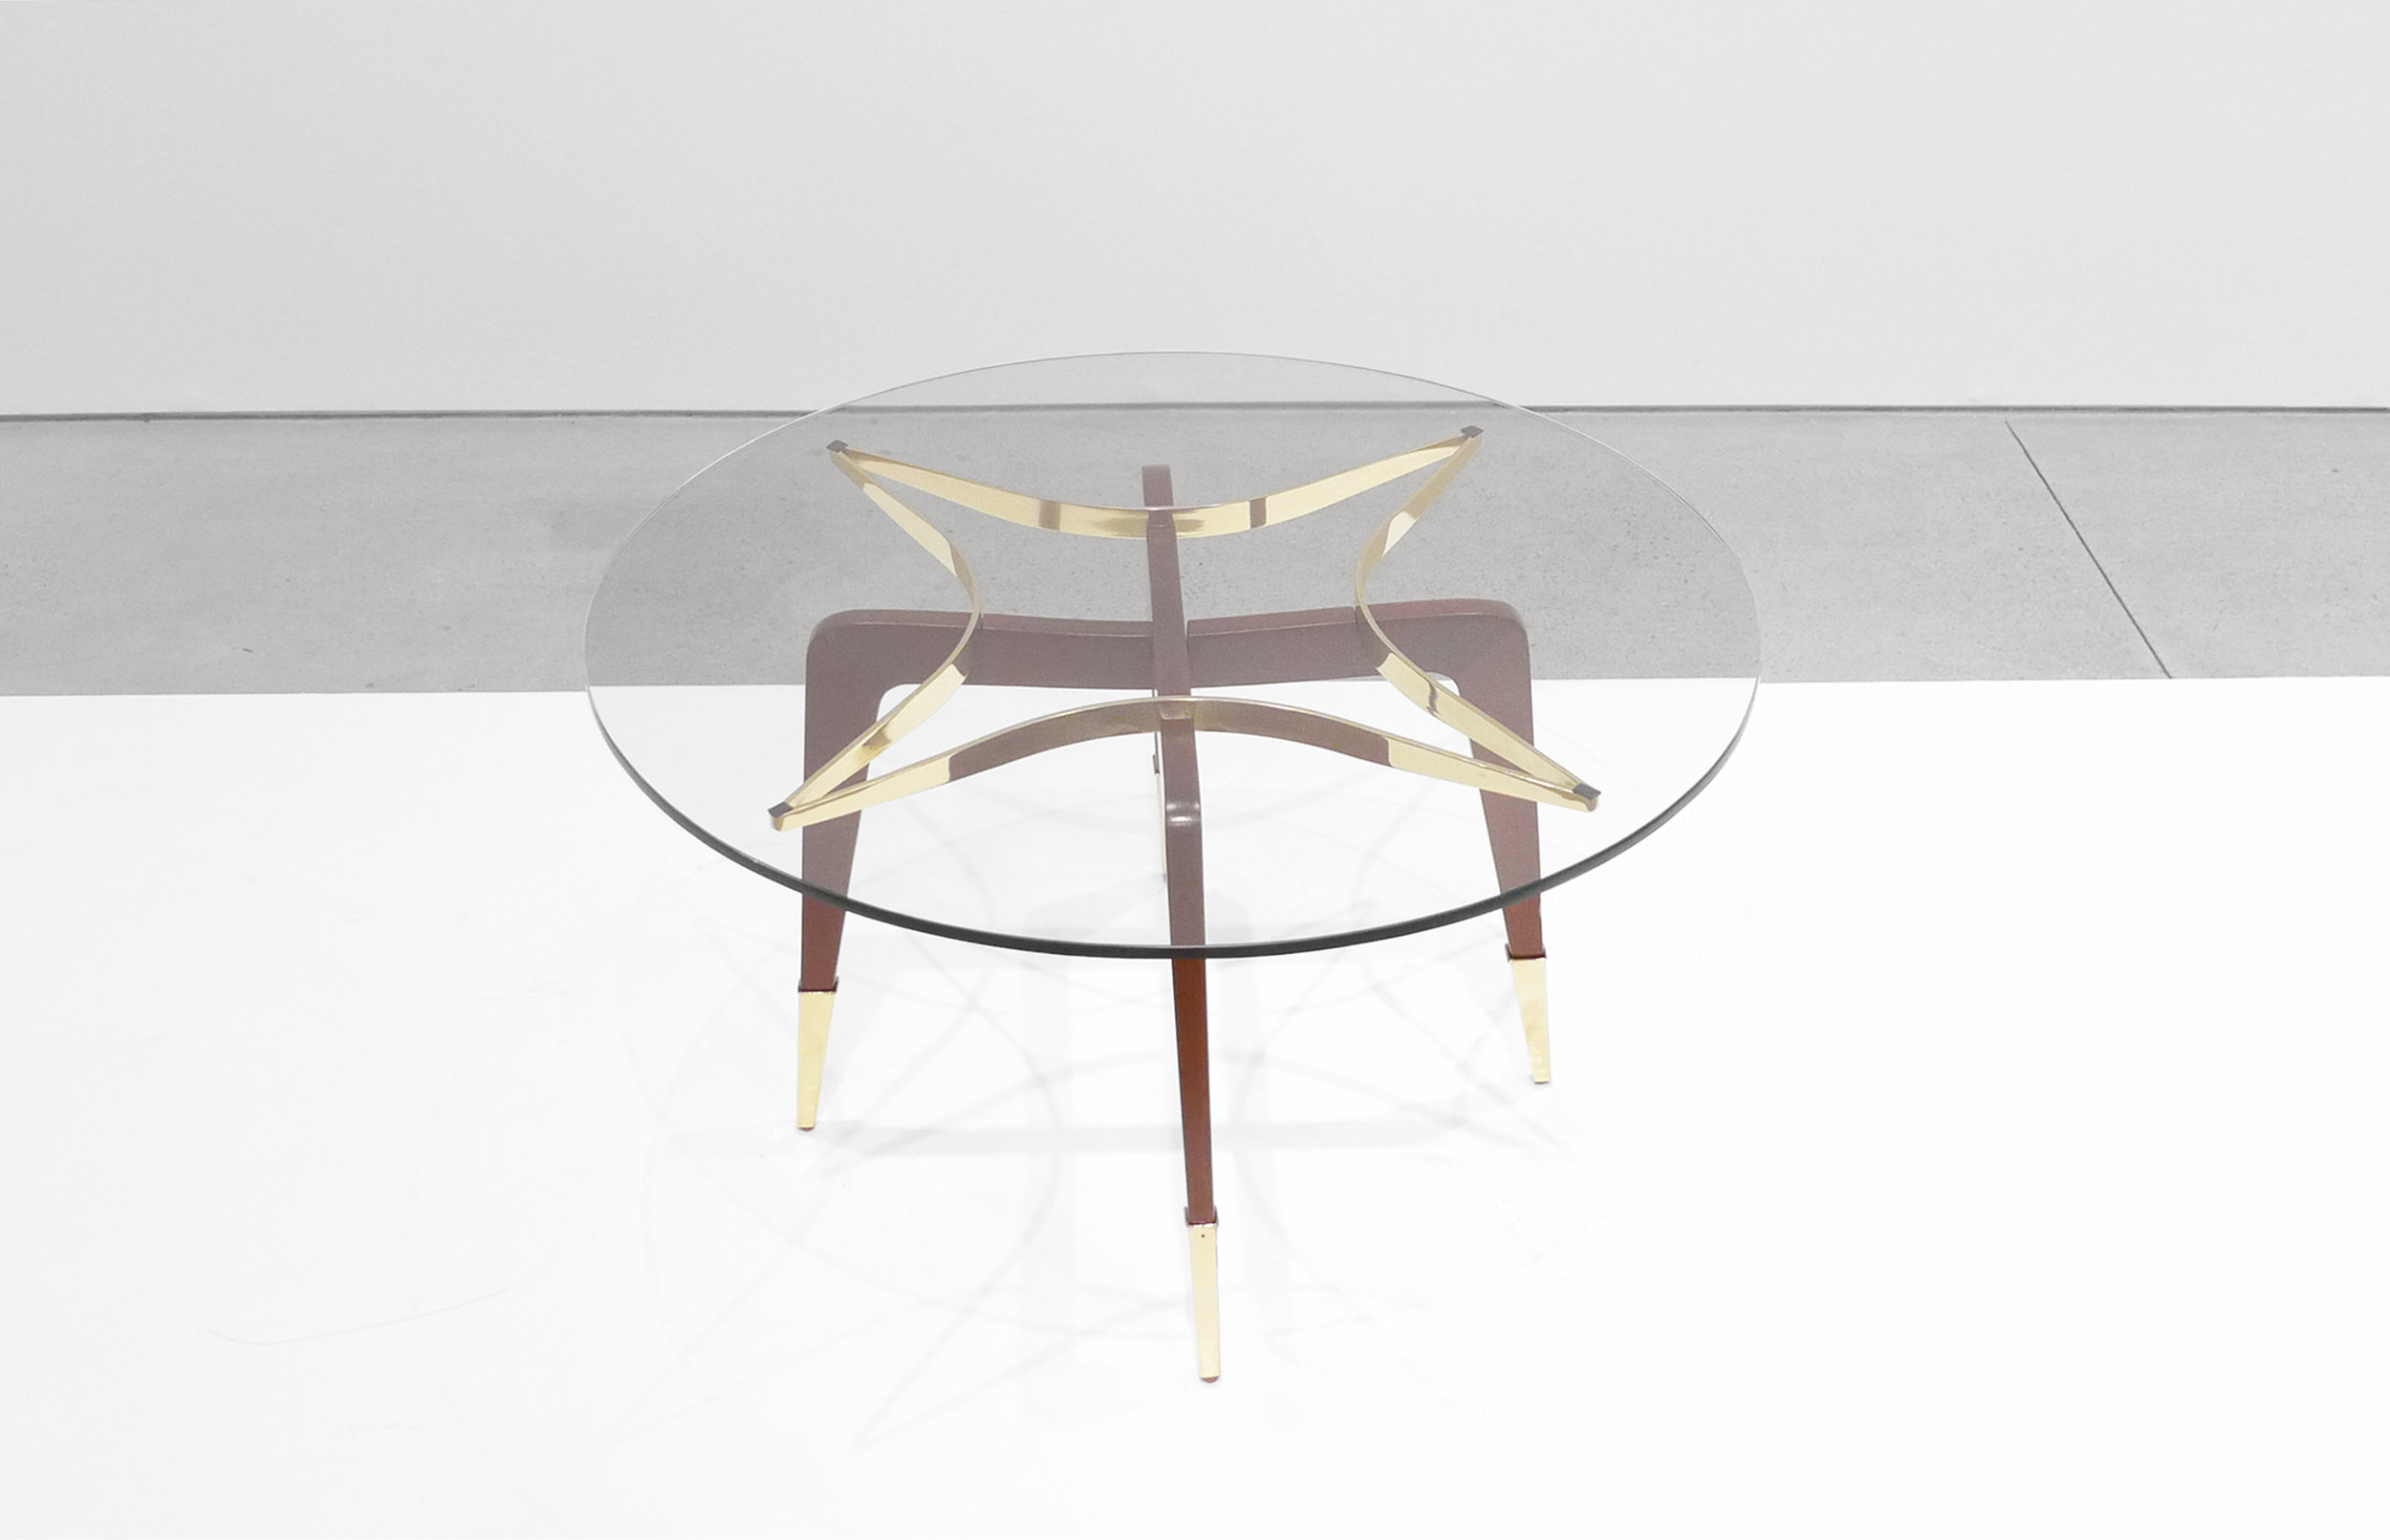 Paolo Buffa, Italian Mid-Century Coffee Table, c. 1950 - 1959, Brass, Wood, Glass, 18 H x 29.5 W inches_2.jpg